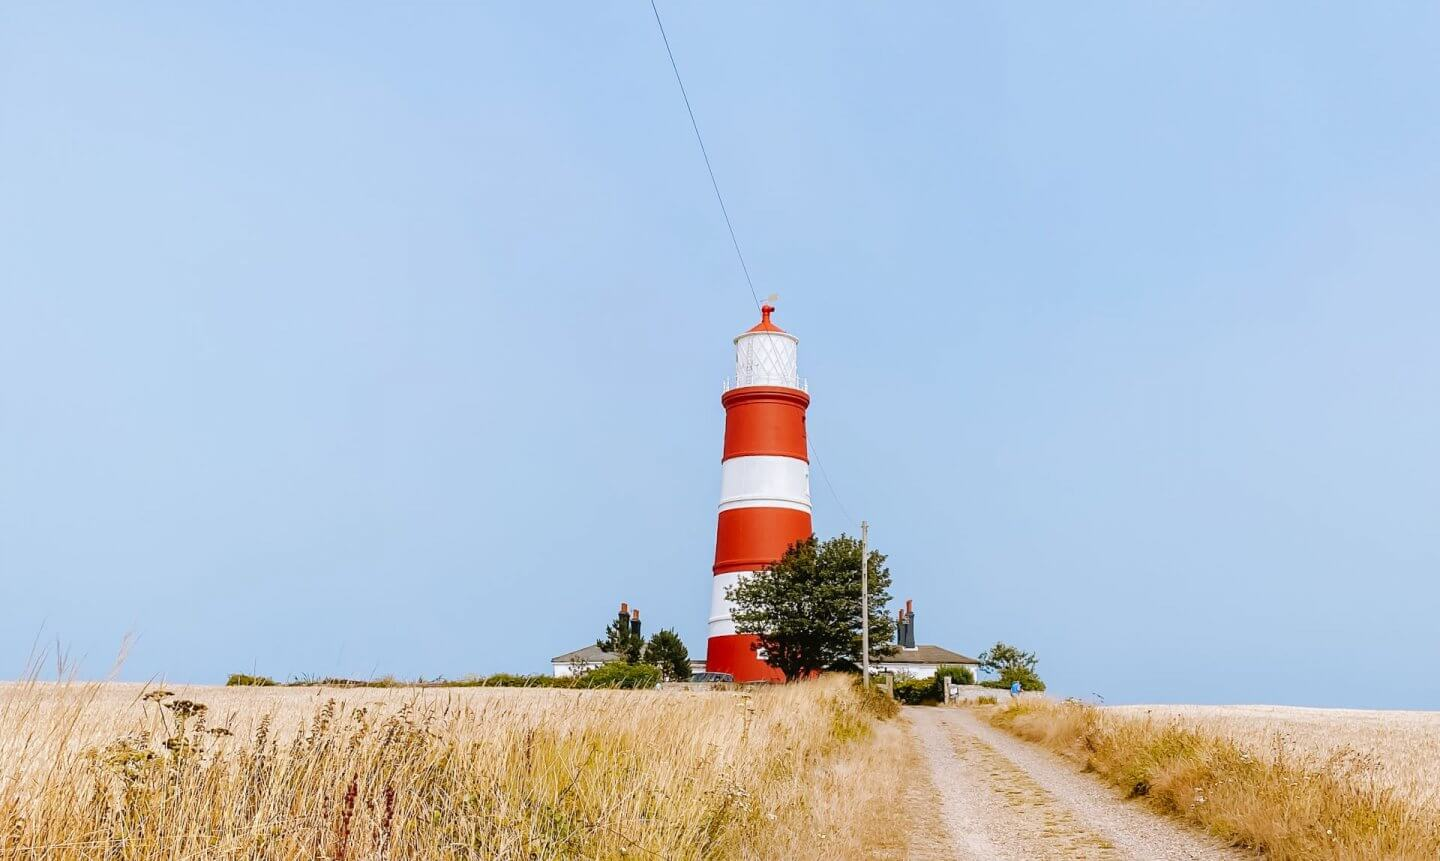 Image of Happisburgh lighthouse in one of the Norfolk Coastal villages